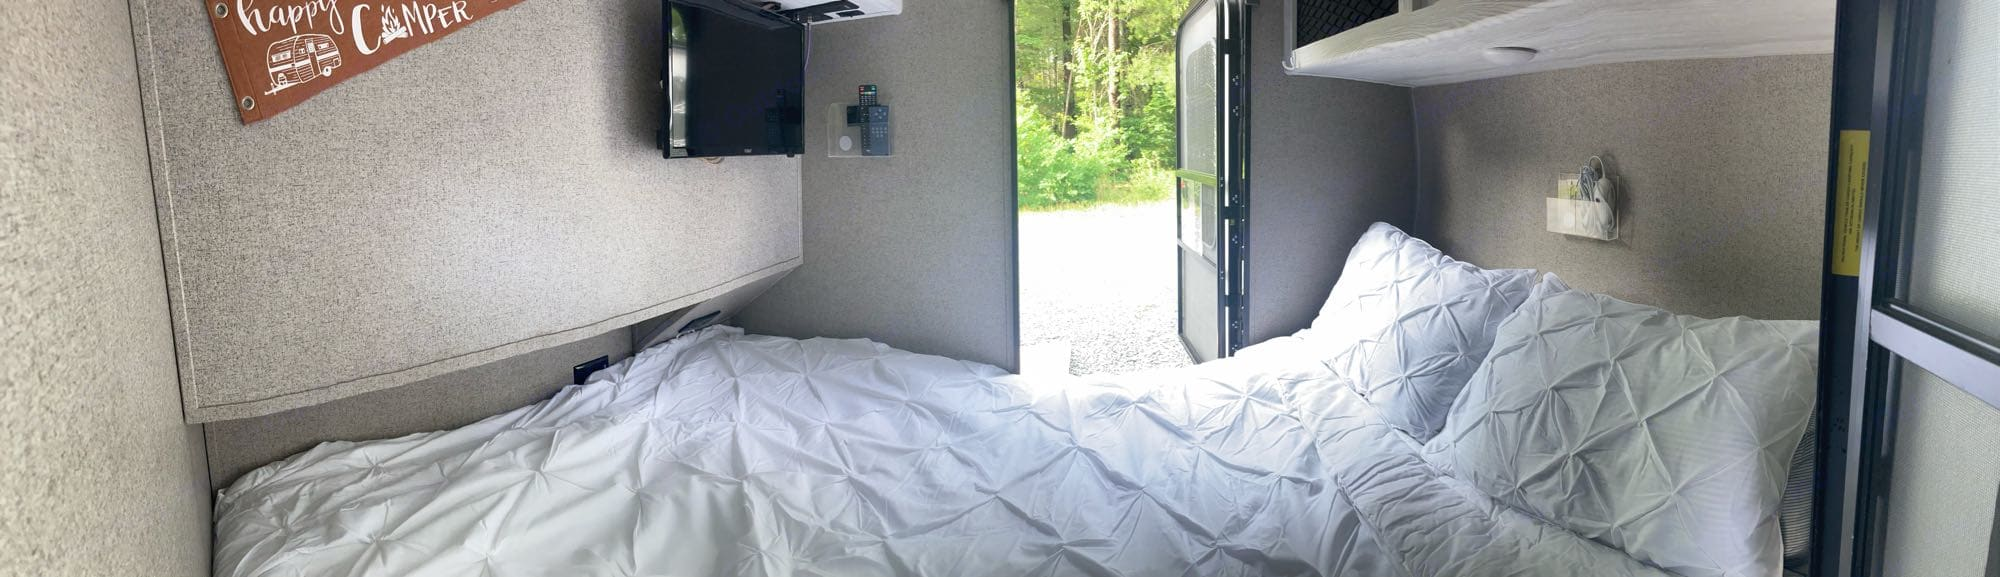 Luxury bedding, heated mattress. Forest River Other 2020